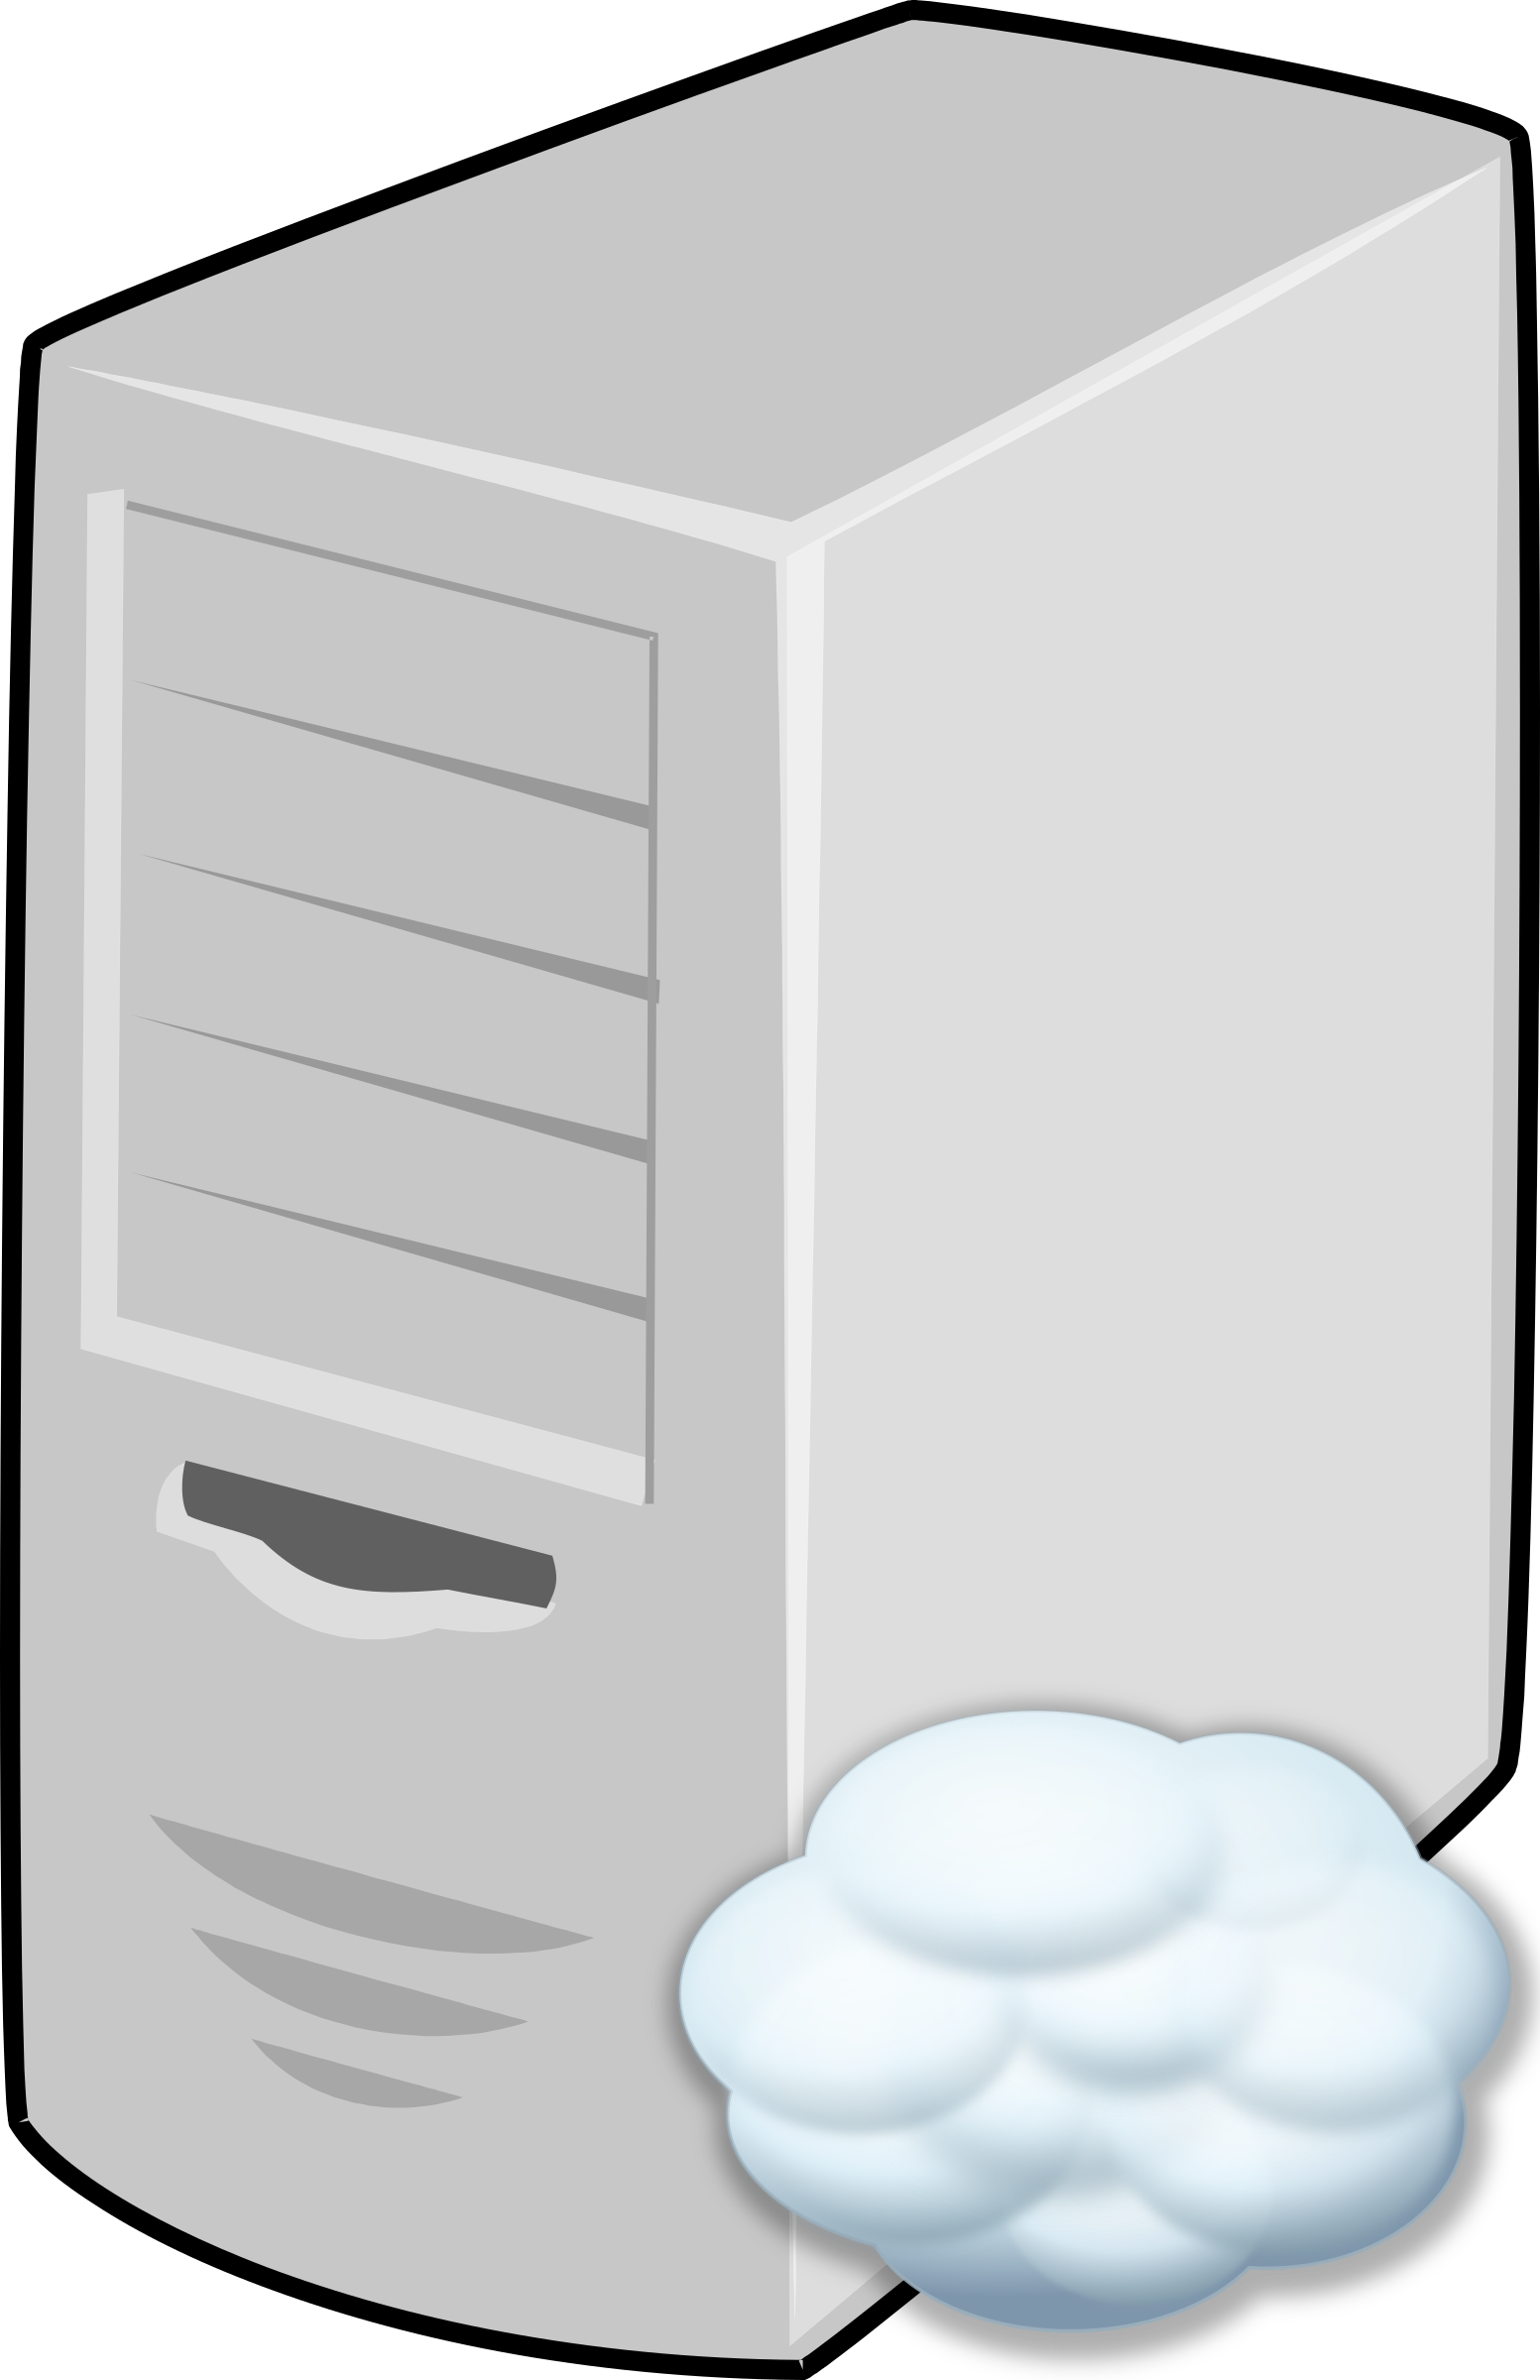 clipart cloud server rh openclipart org cocktail server clip art cocktail server clip art